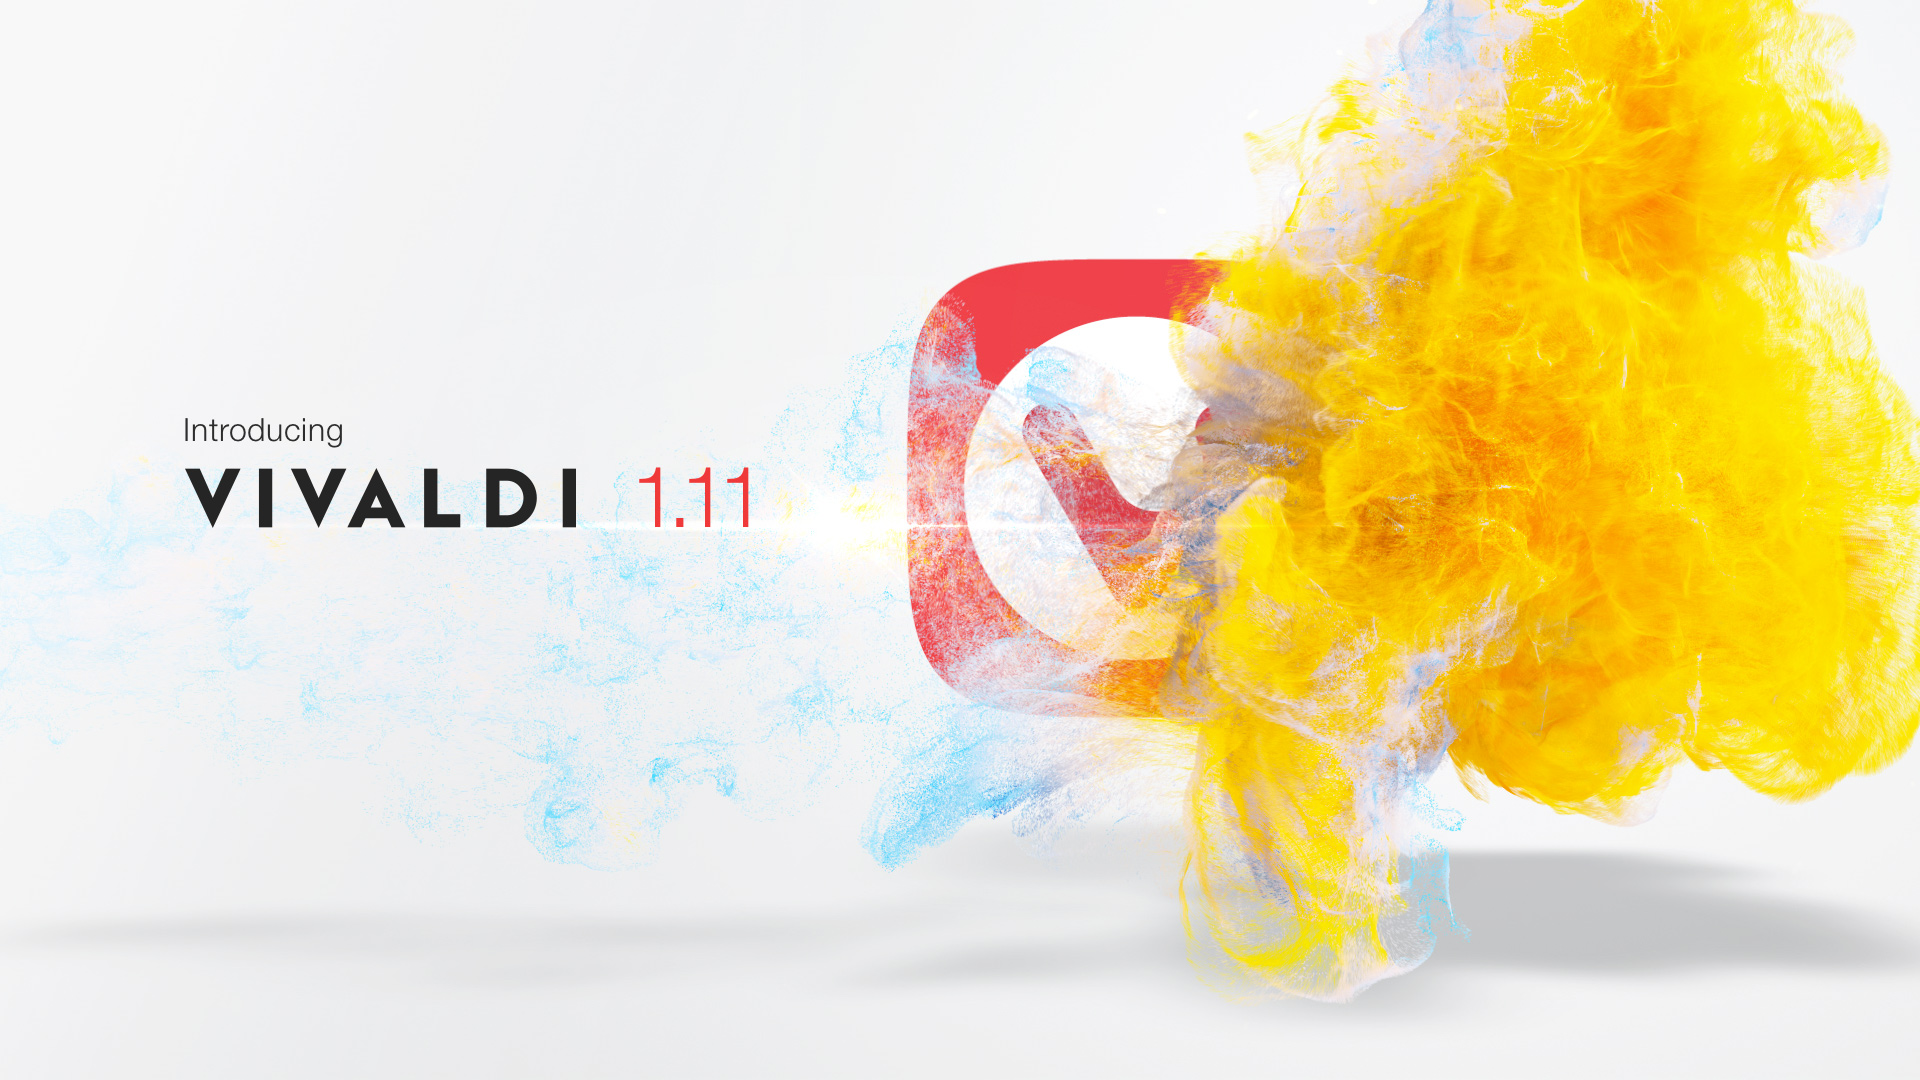 The Vivaldi browser releases version 1.11